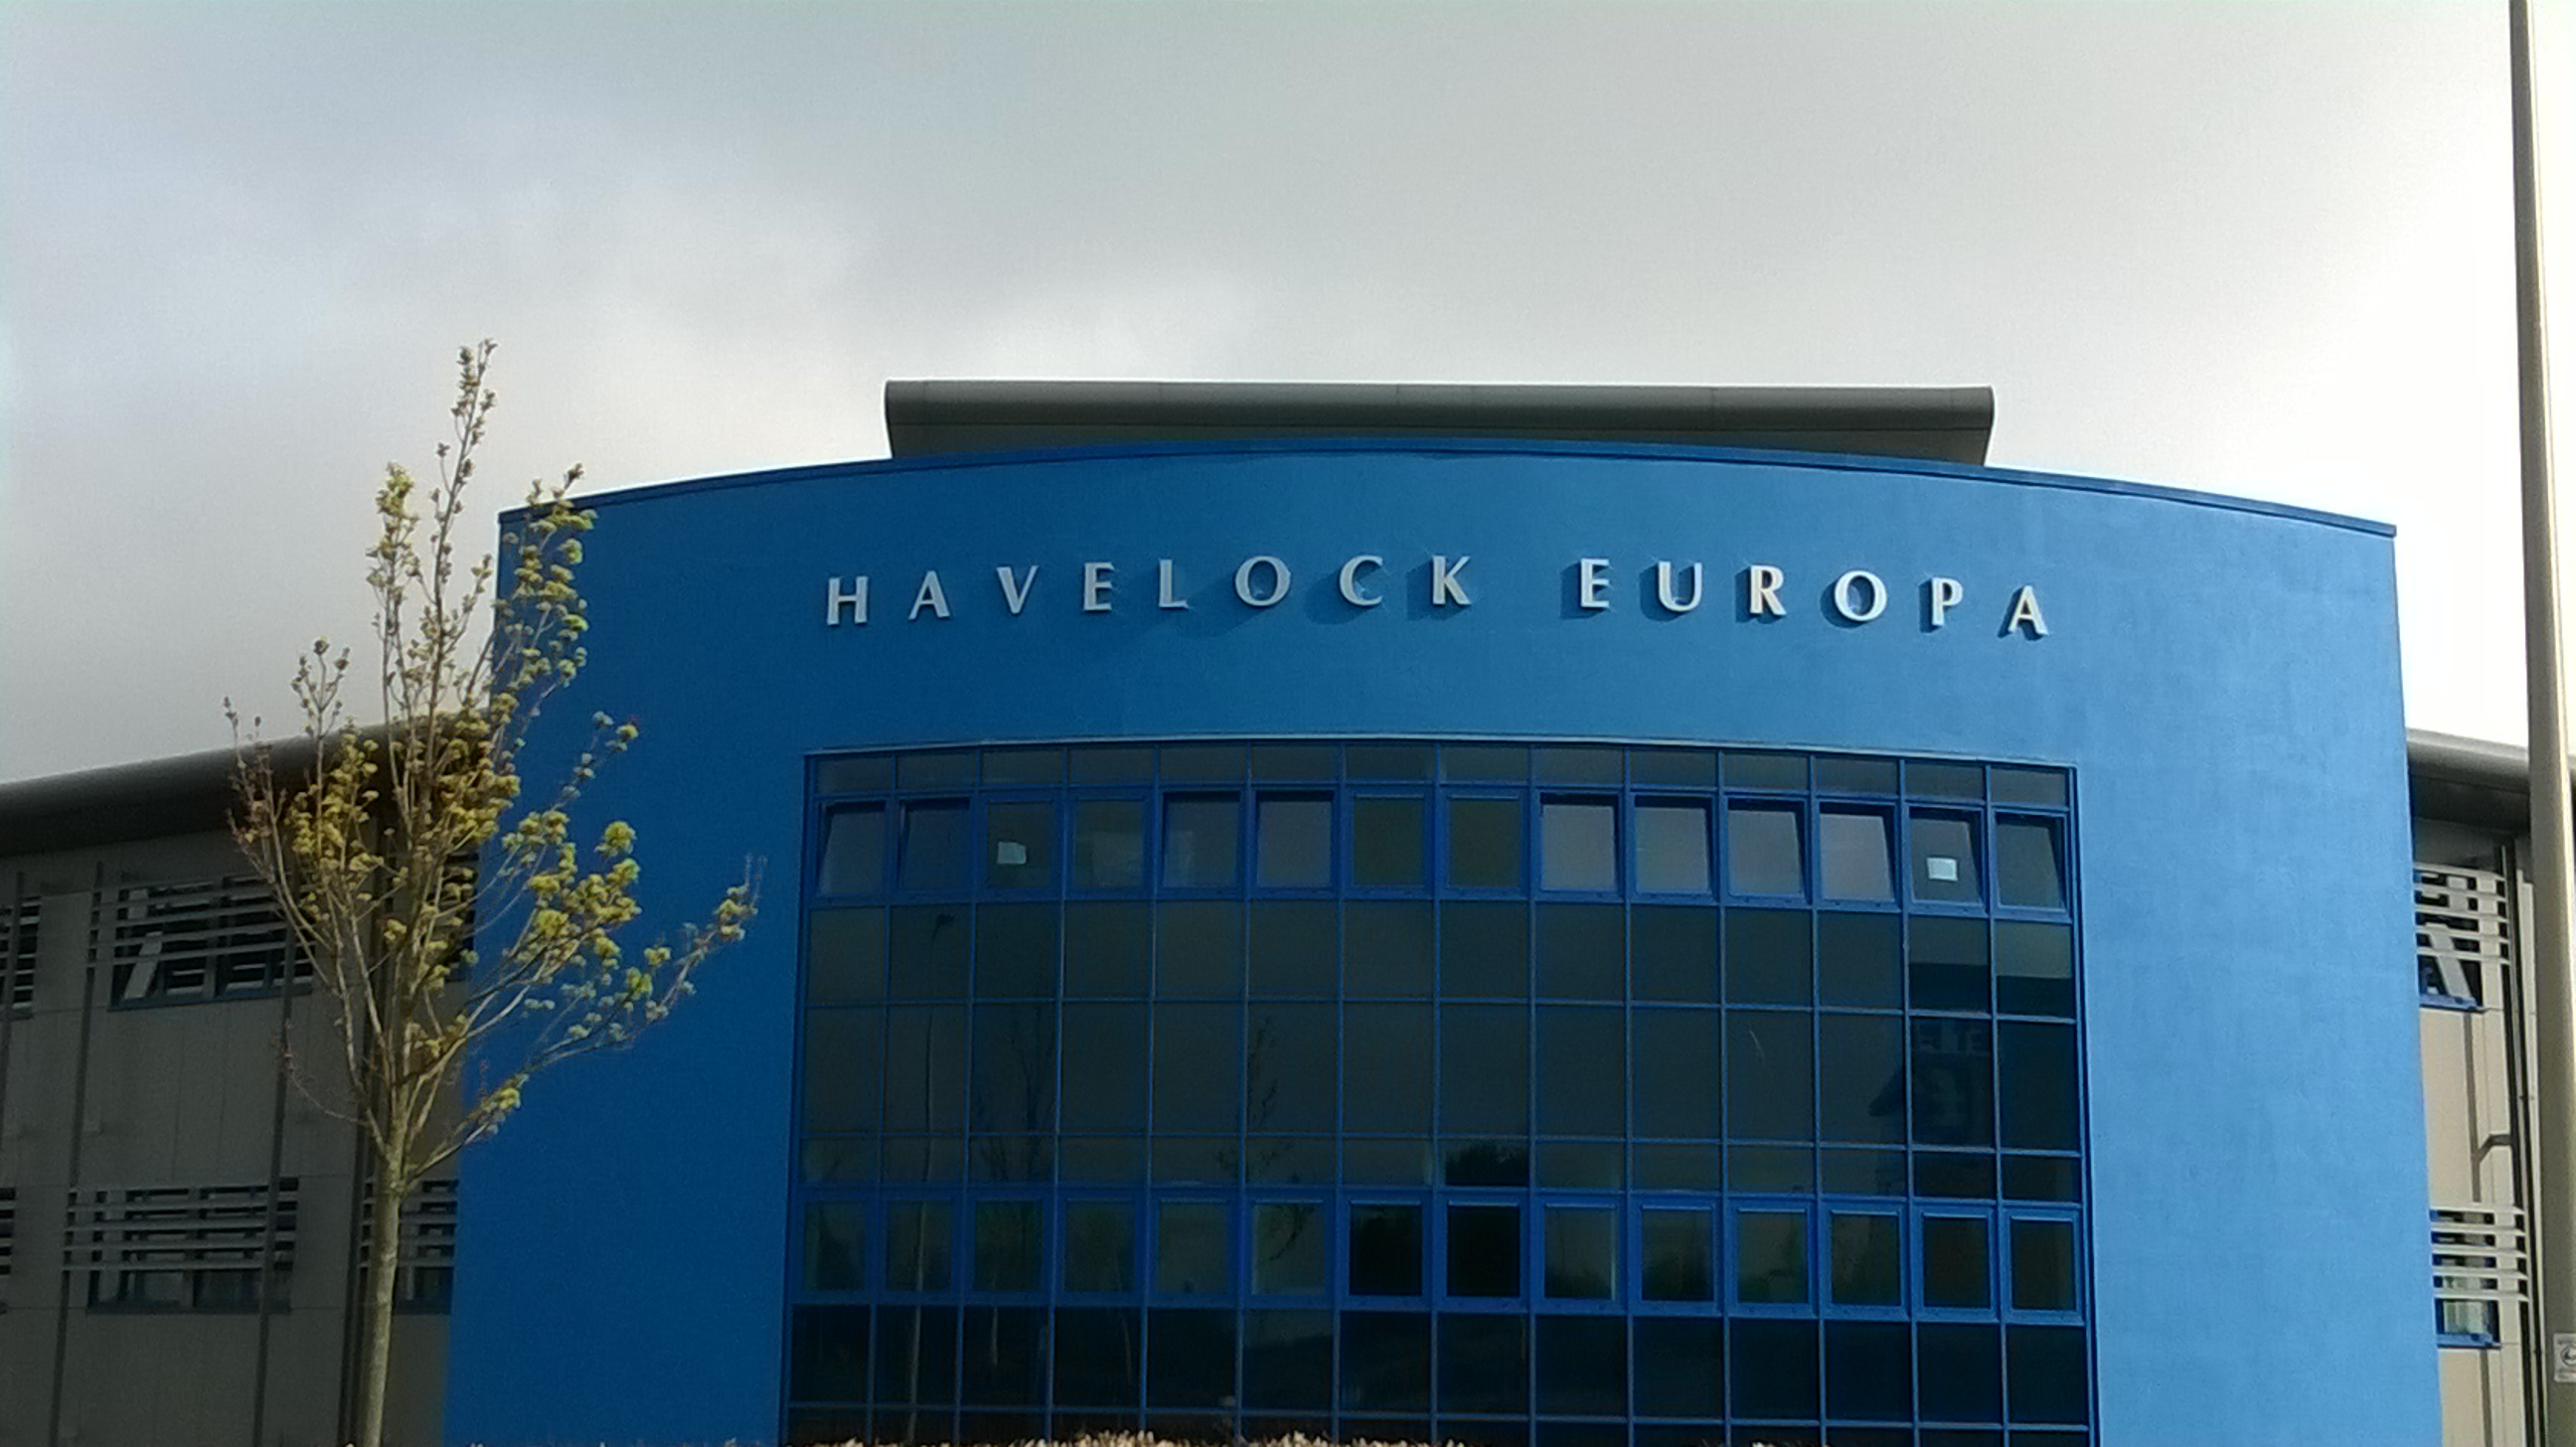 Havelock Europa Exterior Signage - Sign Plus